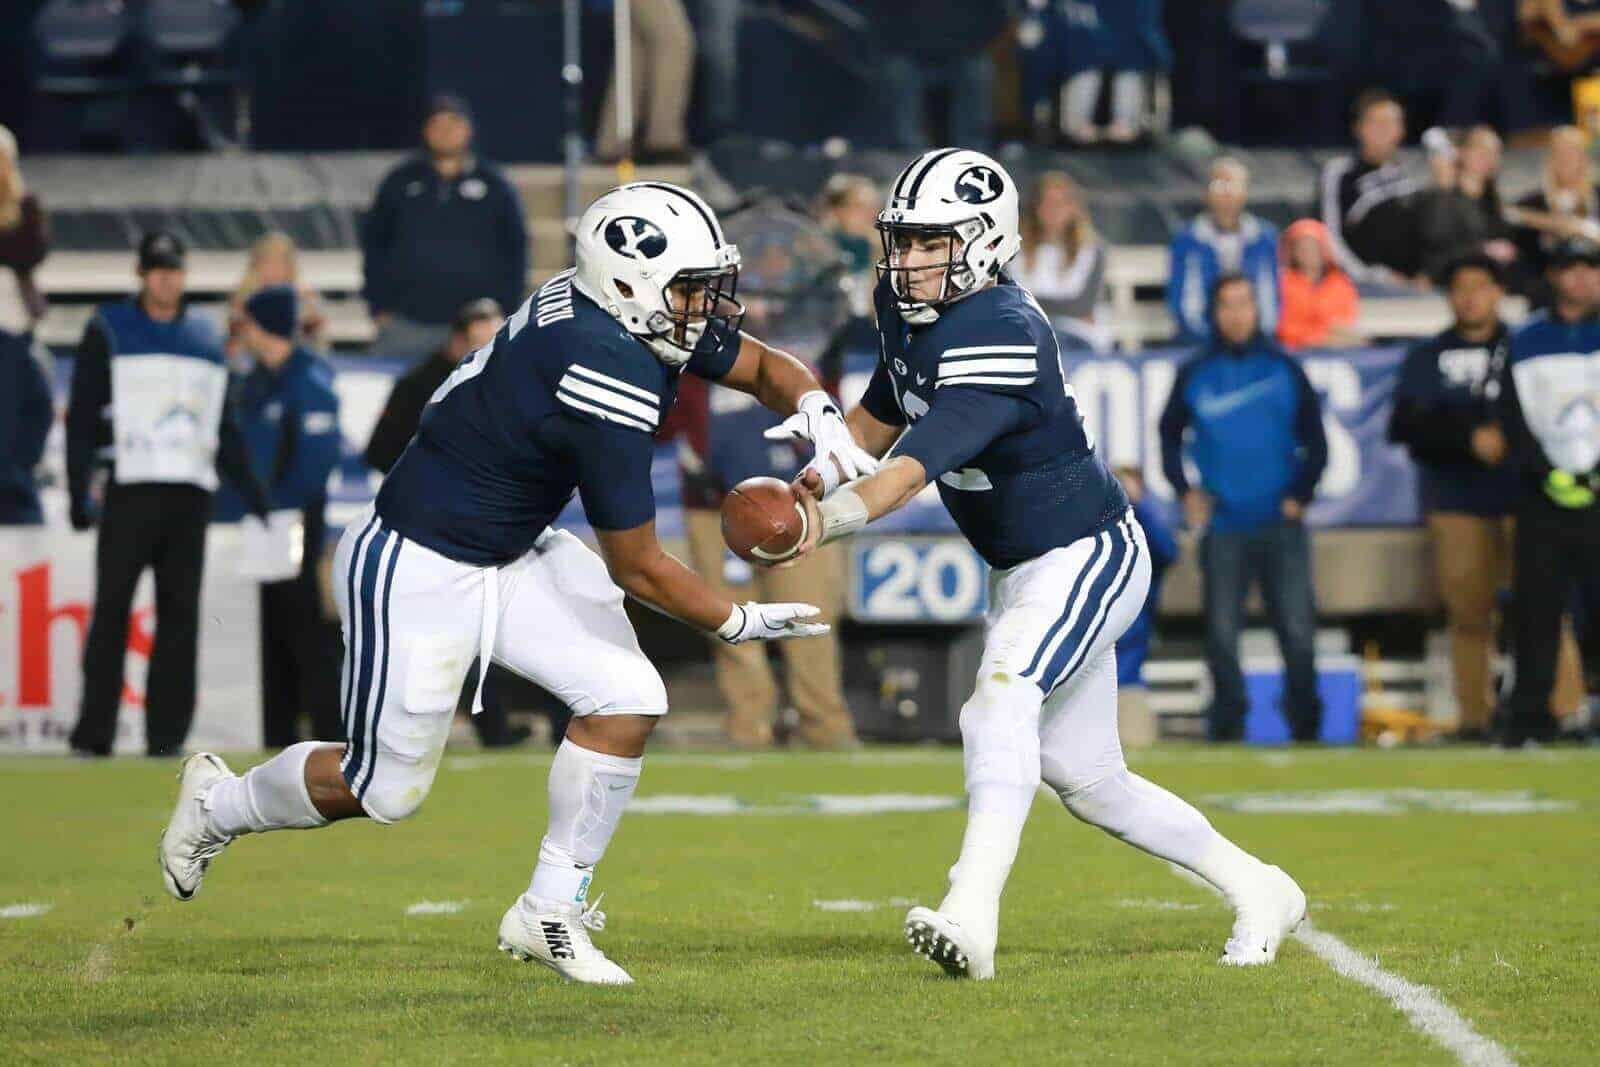 College Football Schedule: BYU